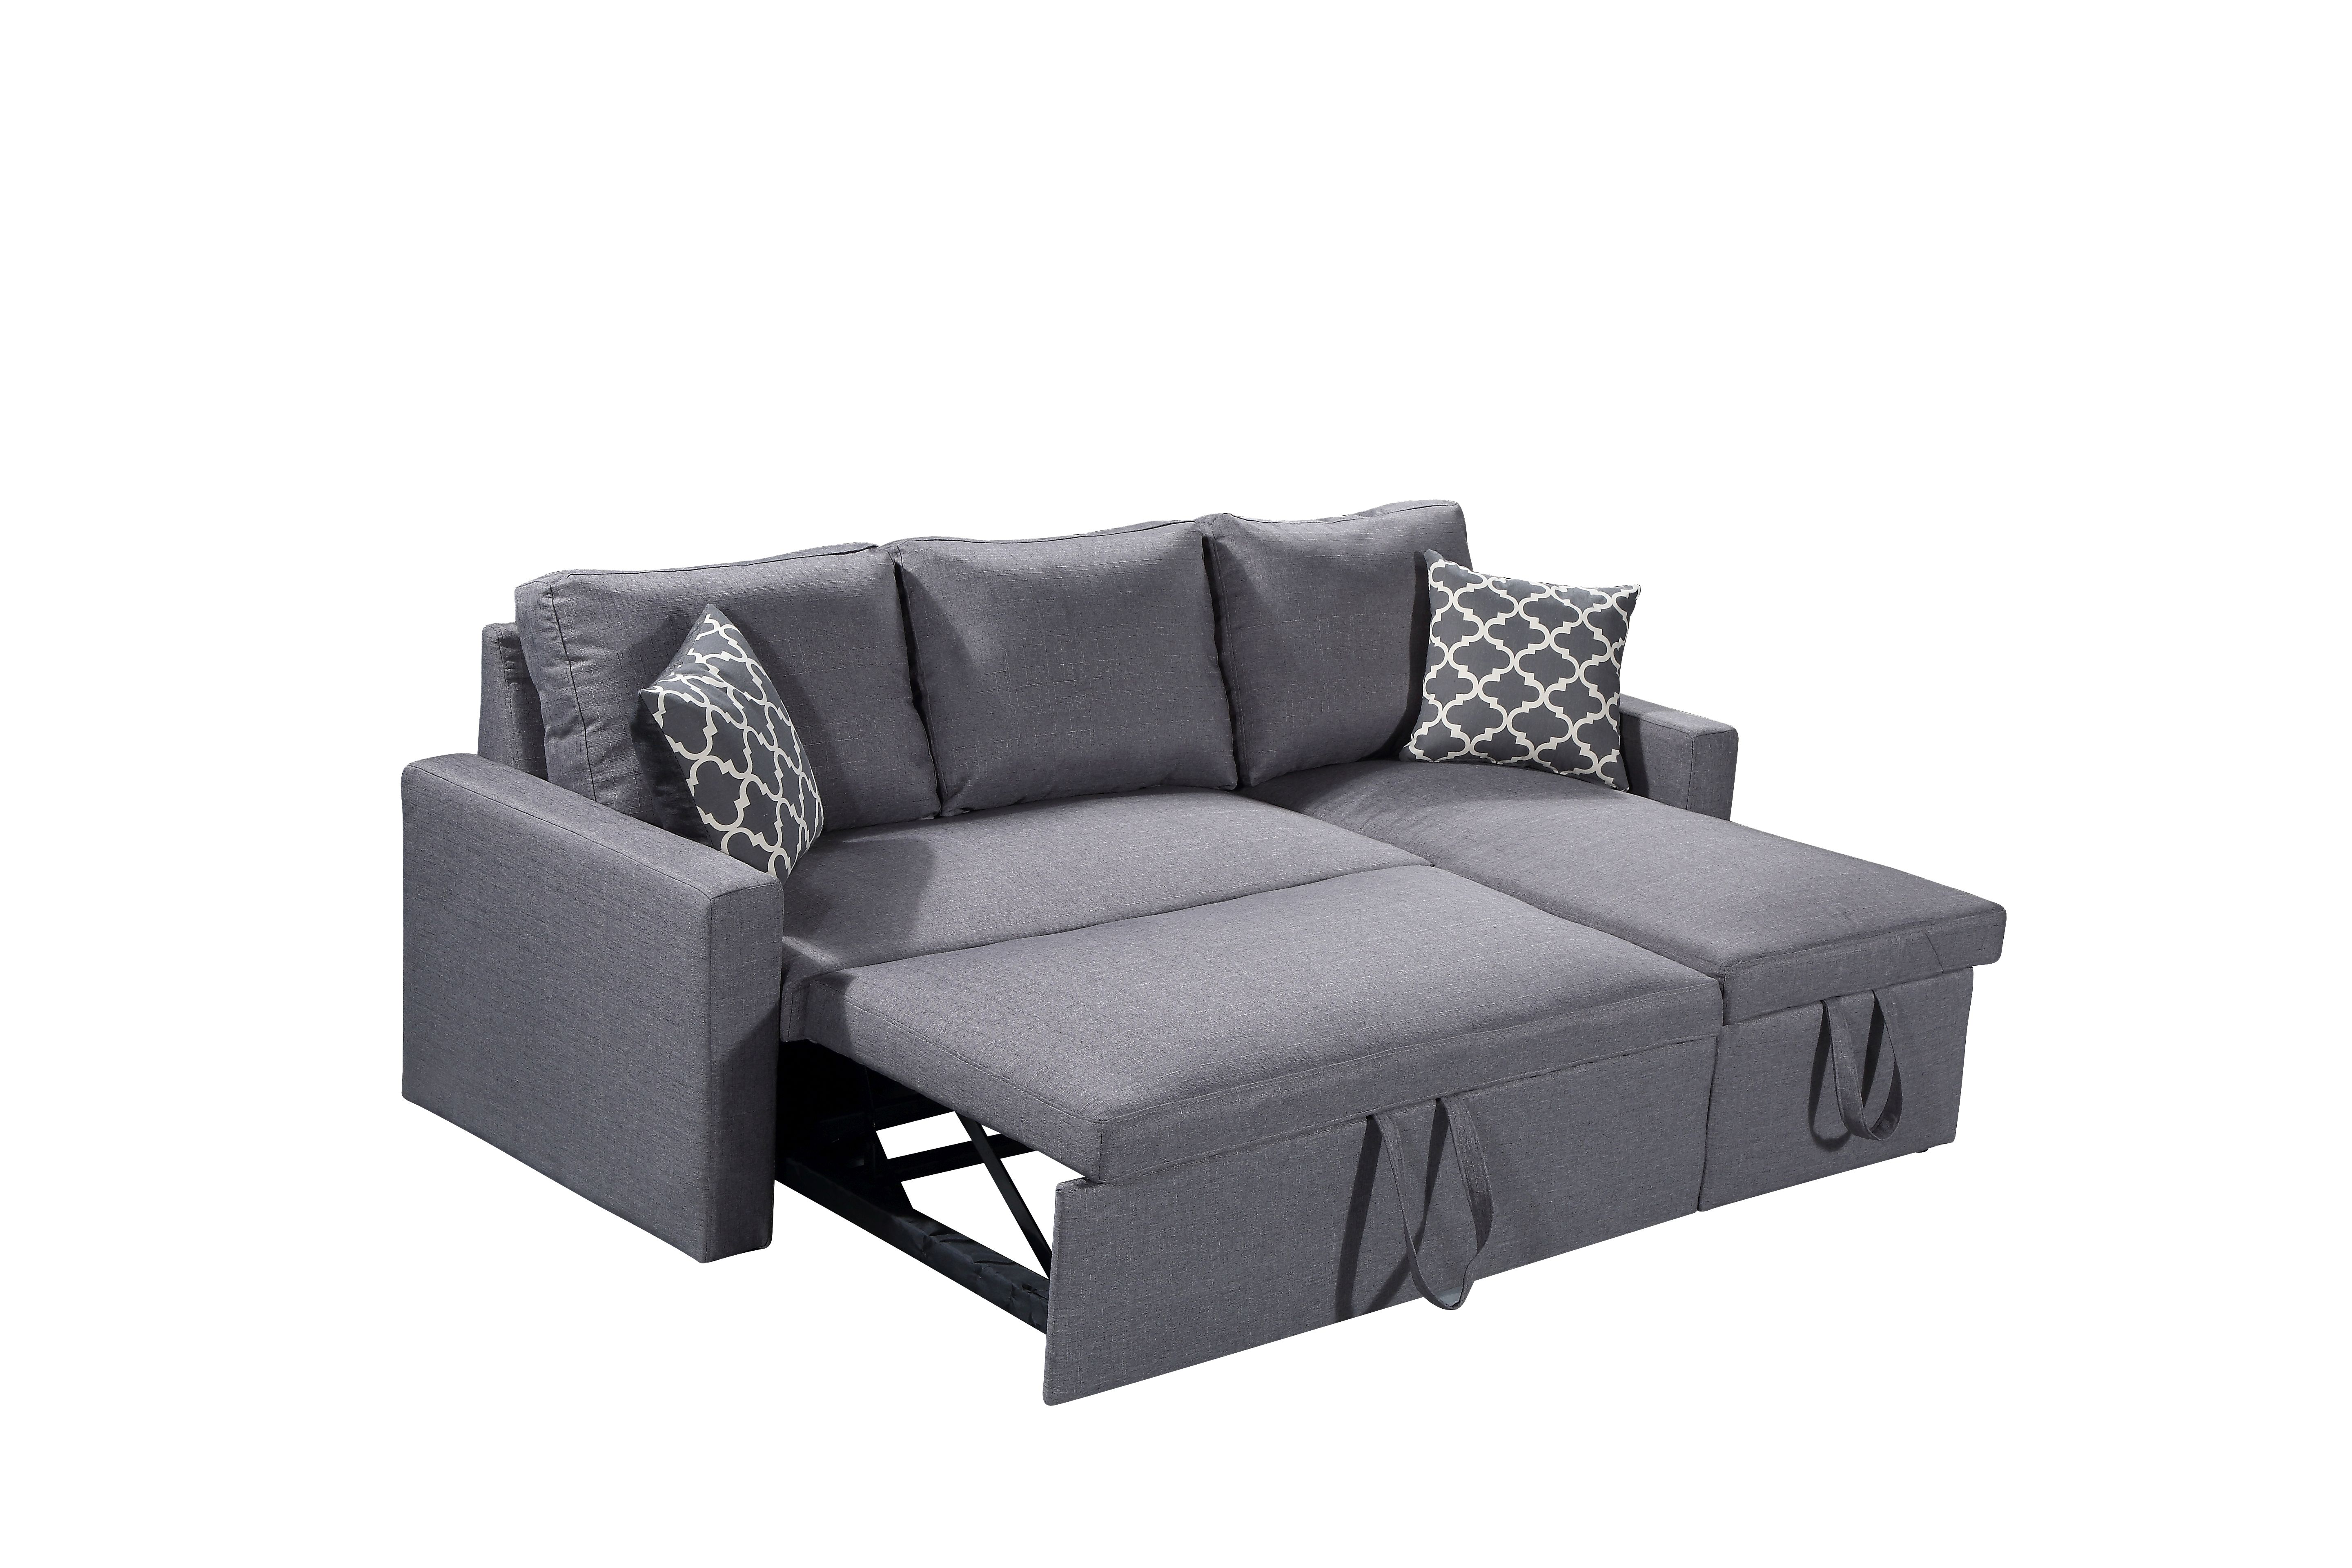 Outstanding Zara Sectional Sofa 3 In 1 Sofa Bed Storage Ncnpc Chair Design For Home Ncnpcorg